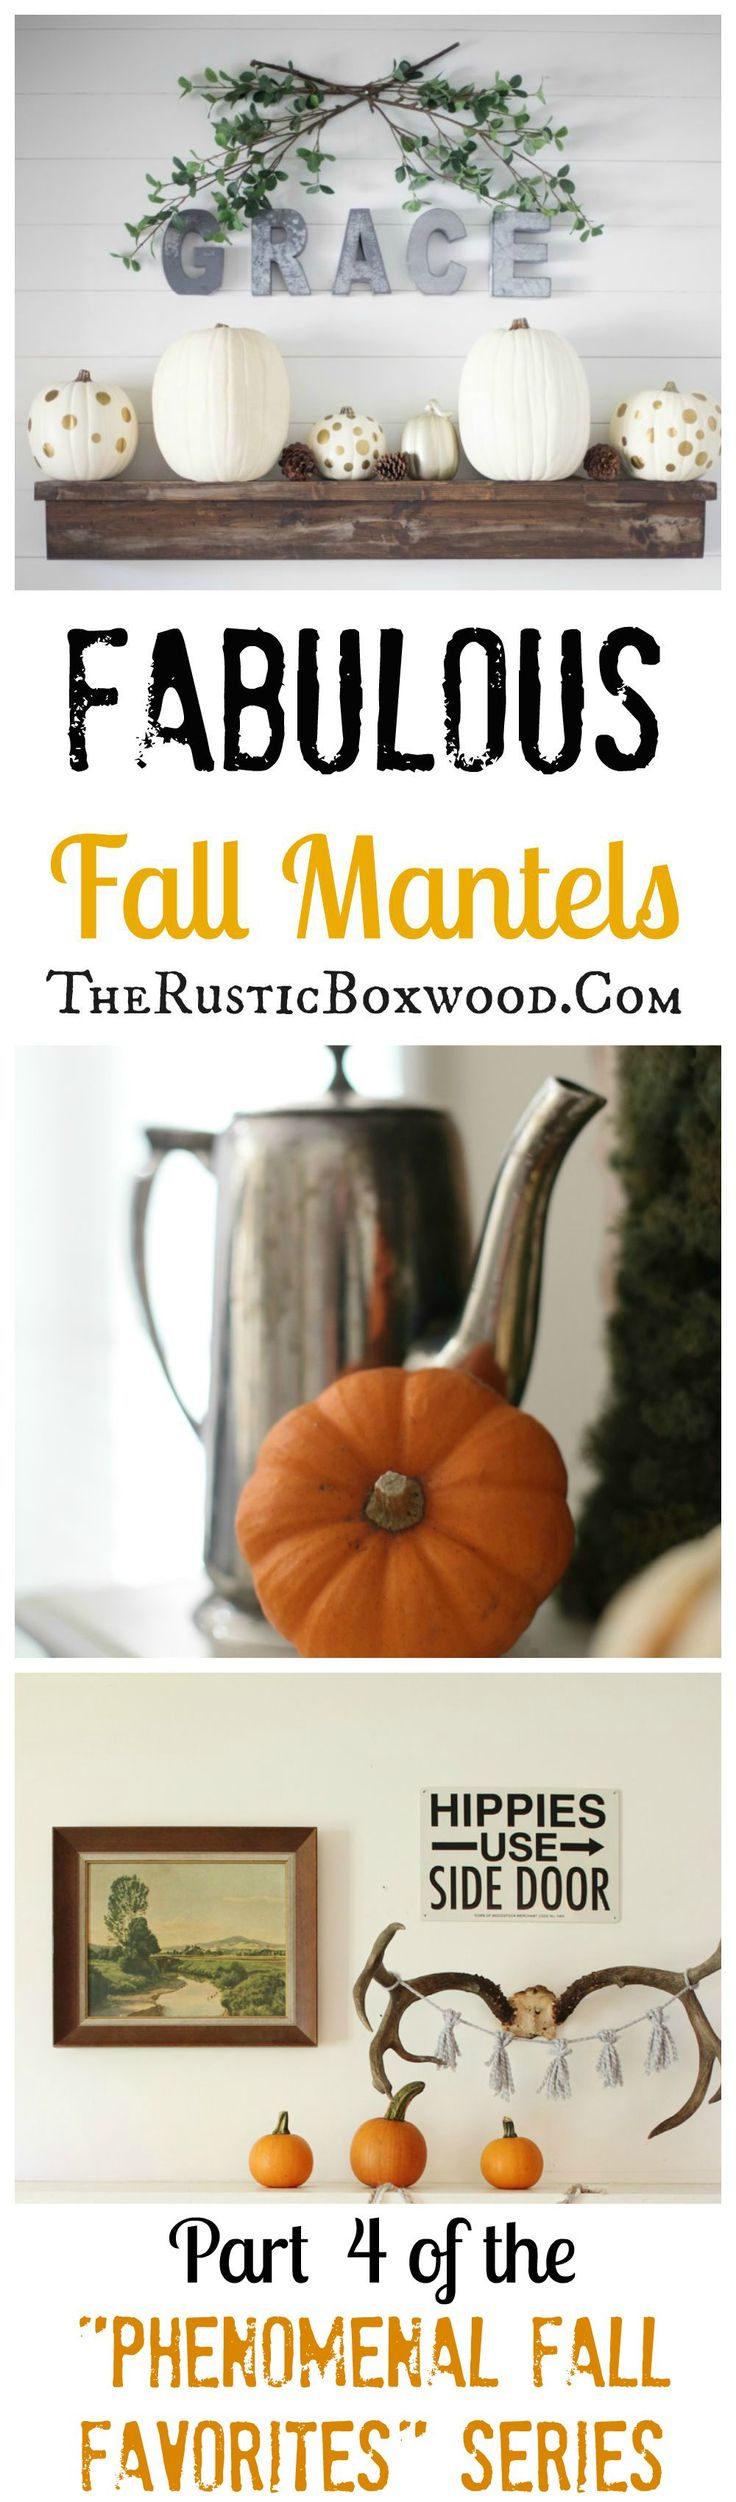 "Beautiful Fall Mantels, Part 4 of the ""Phenomenal Fall Favorites"" Series 